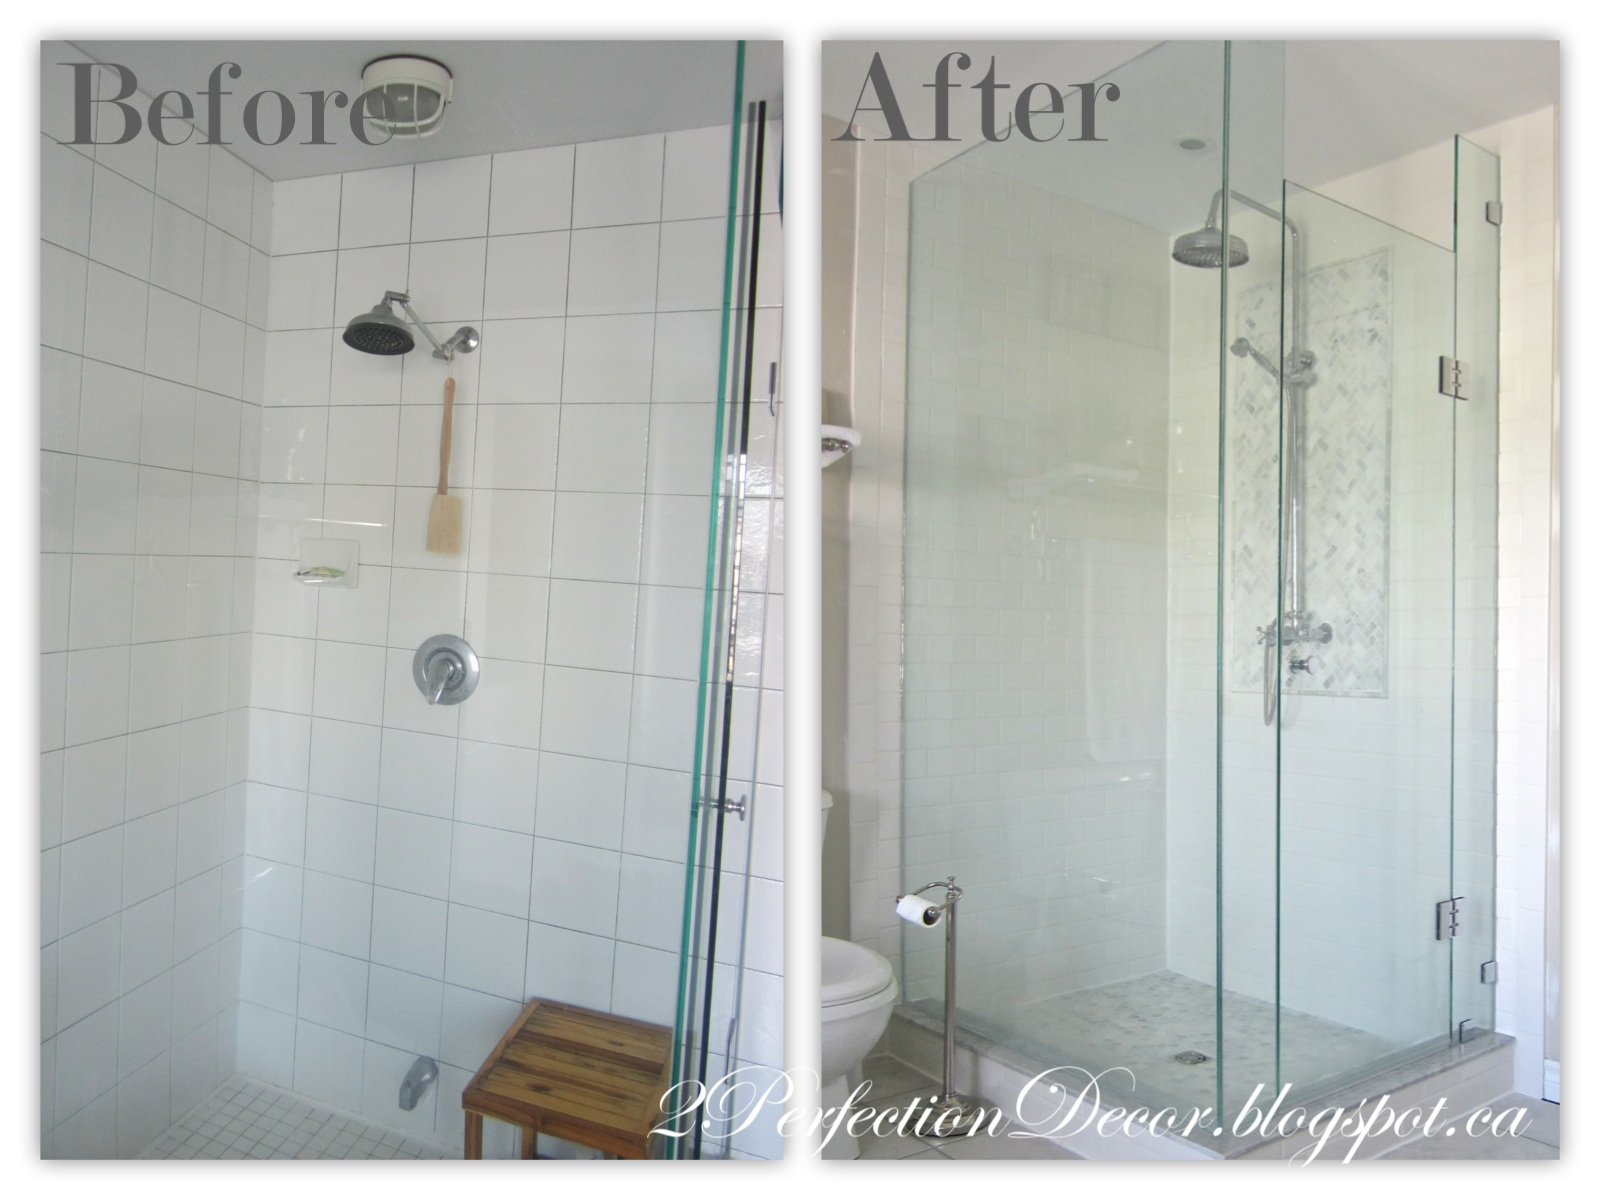 2perfection decor master ensuite shower reveal here is our shower when it was all gutted let me tell you what a nightmare on timing this was our son had just been born and he was approx 2 weeks dailygadgetfo Choice Image